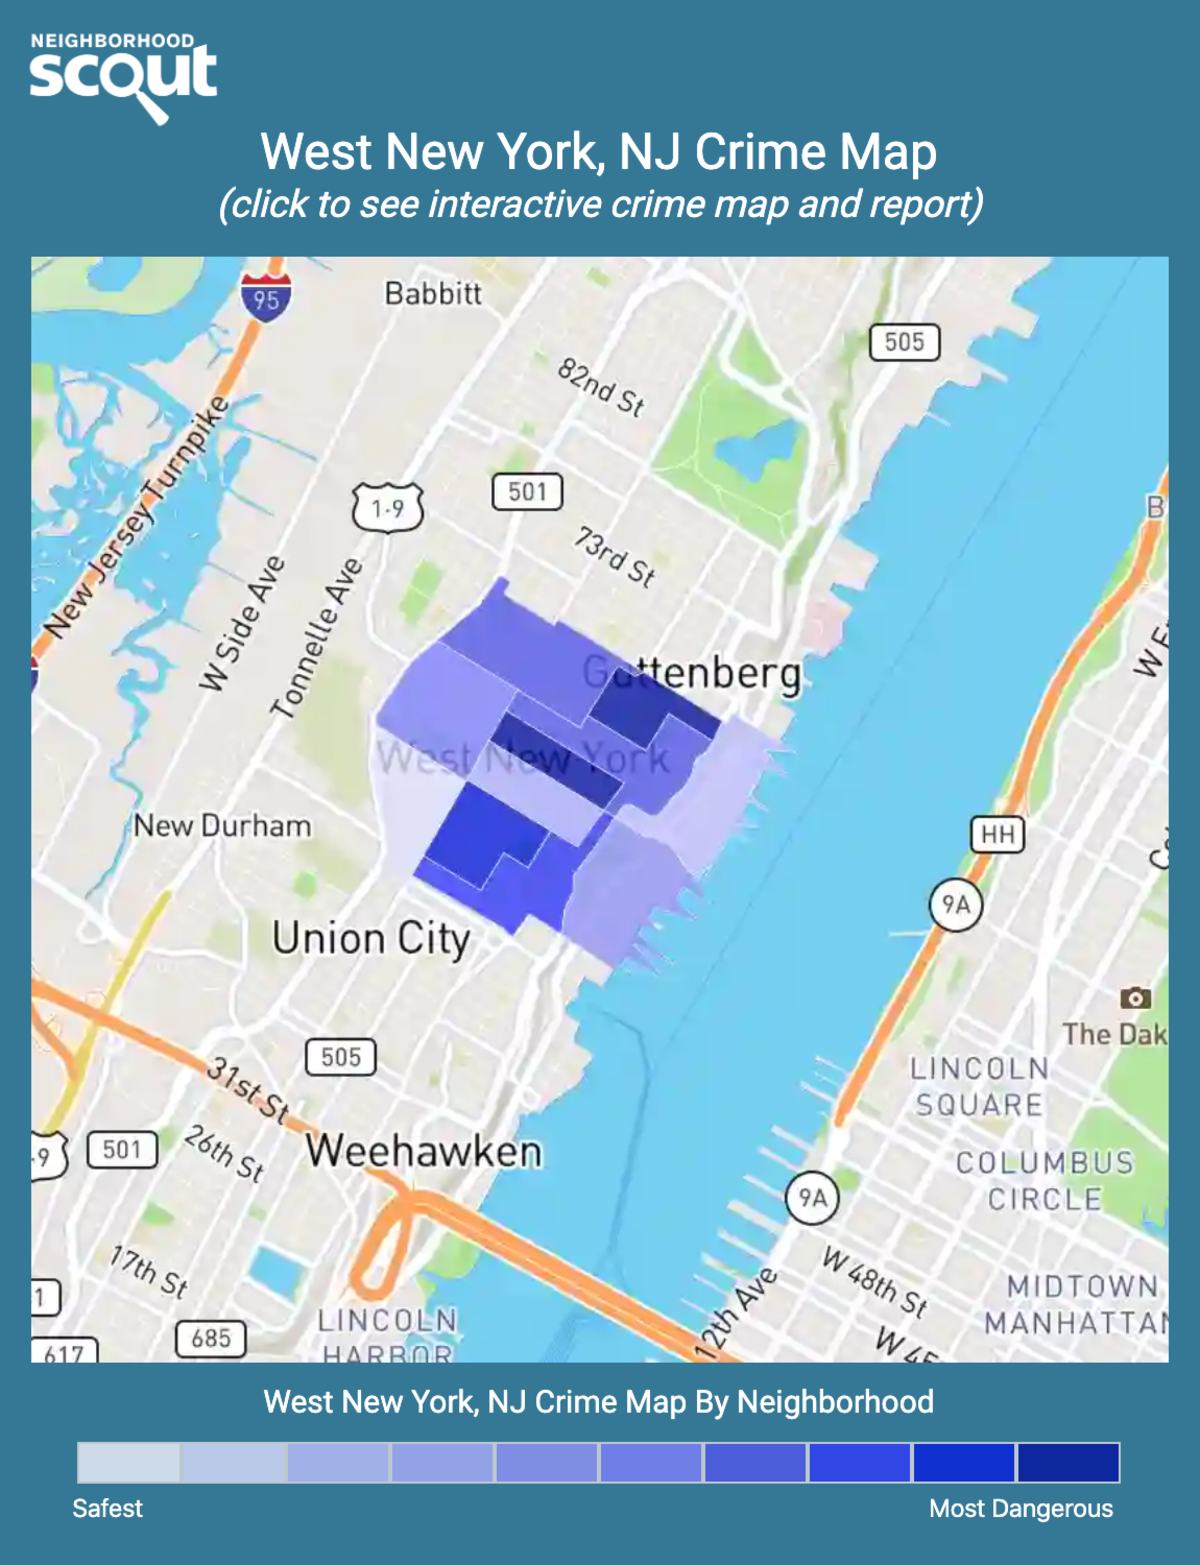 West New York, New Jersey crime map